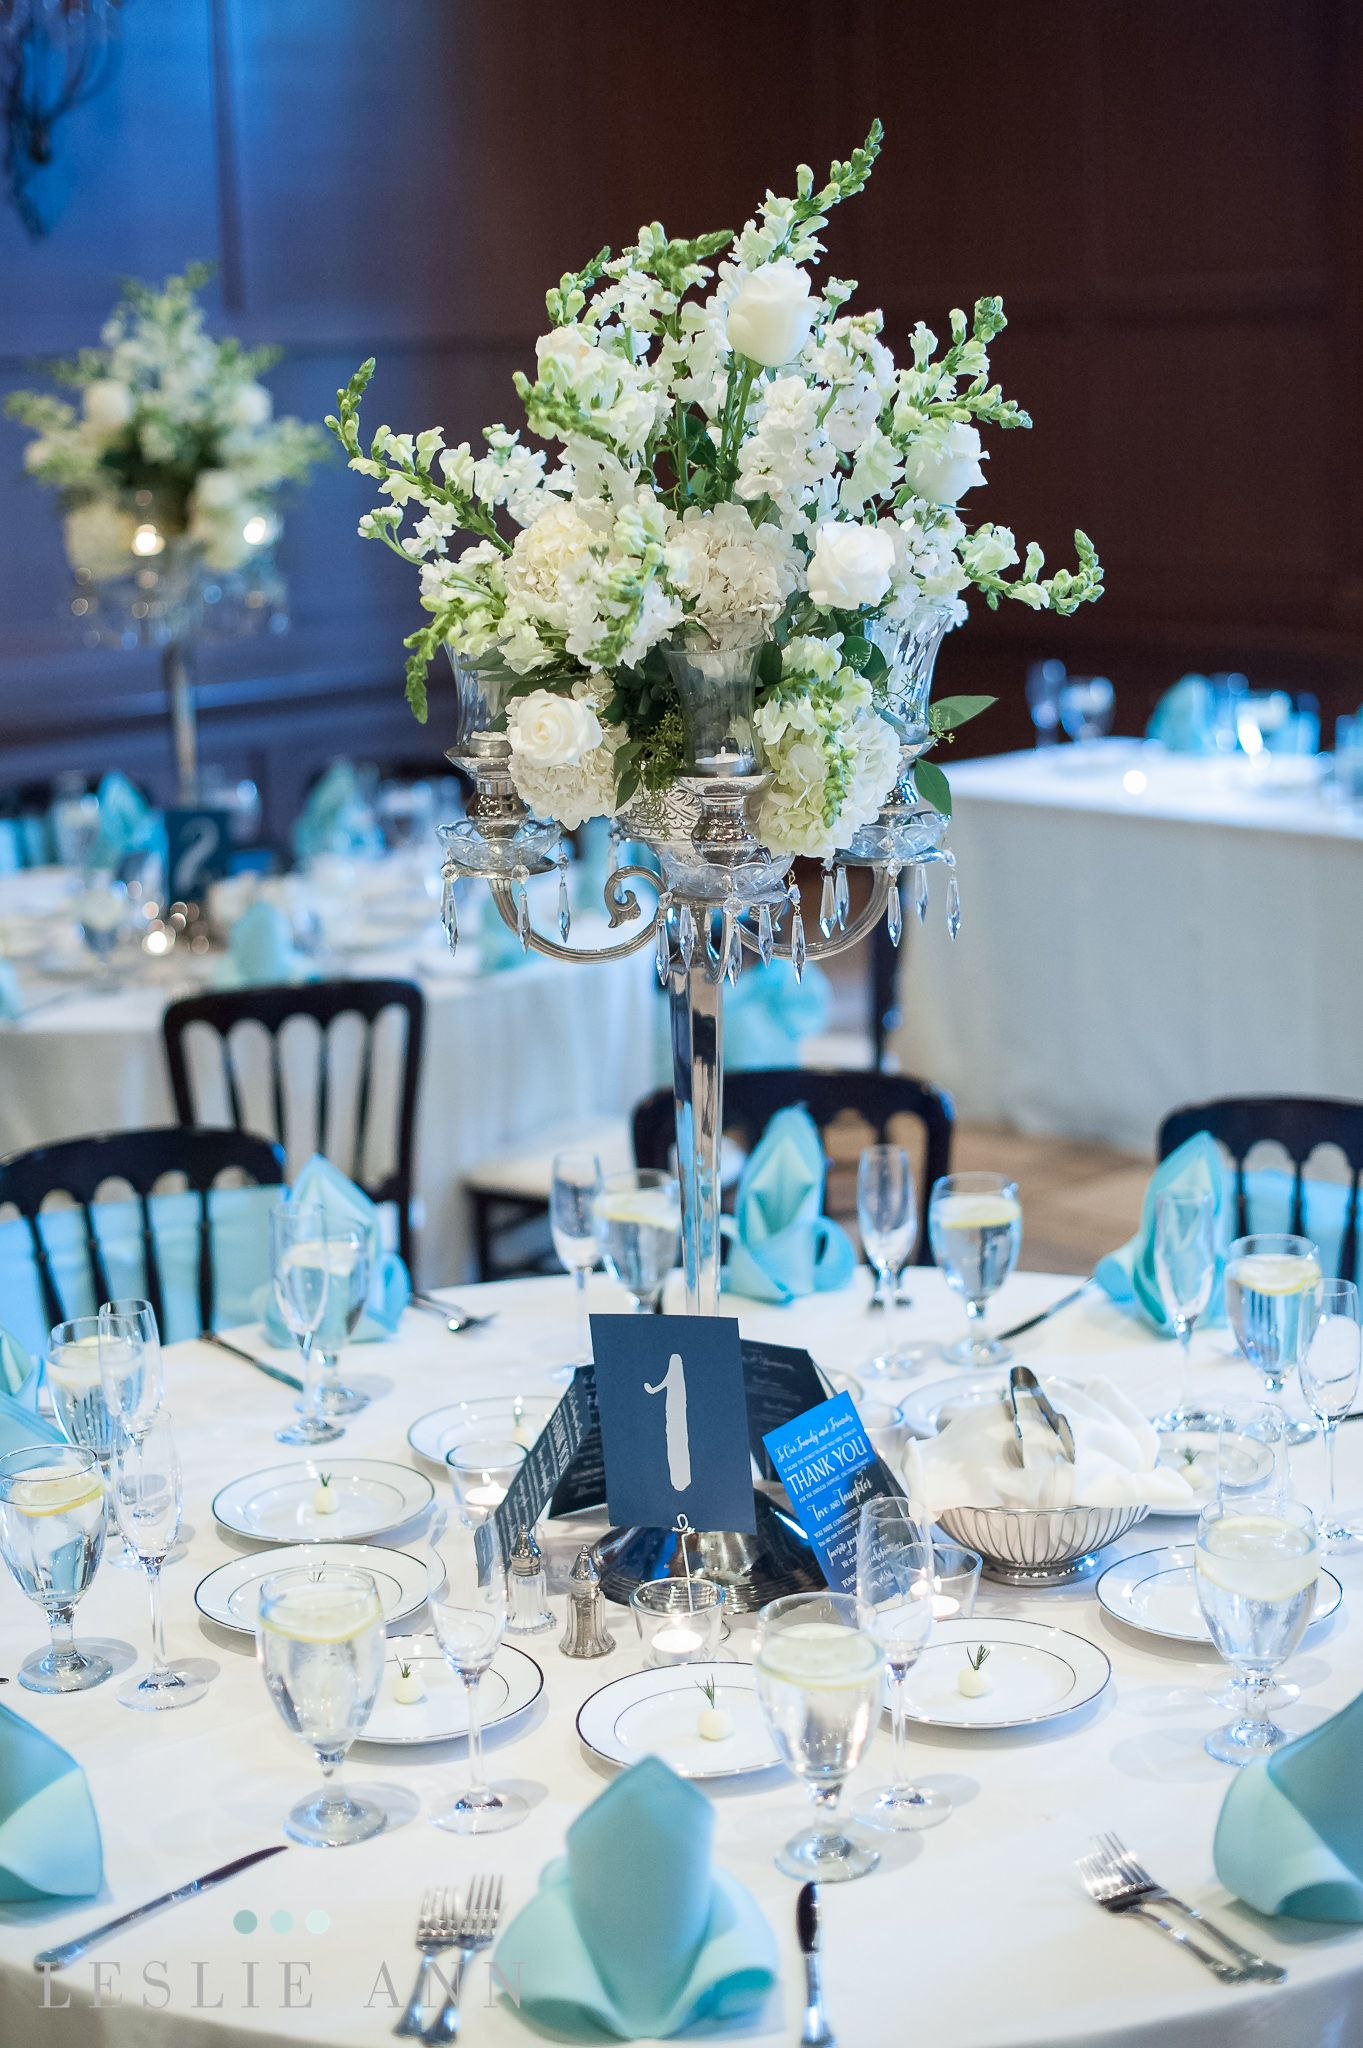 A tiffany blue and white table setting with high silver